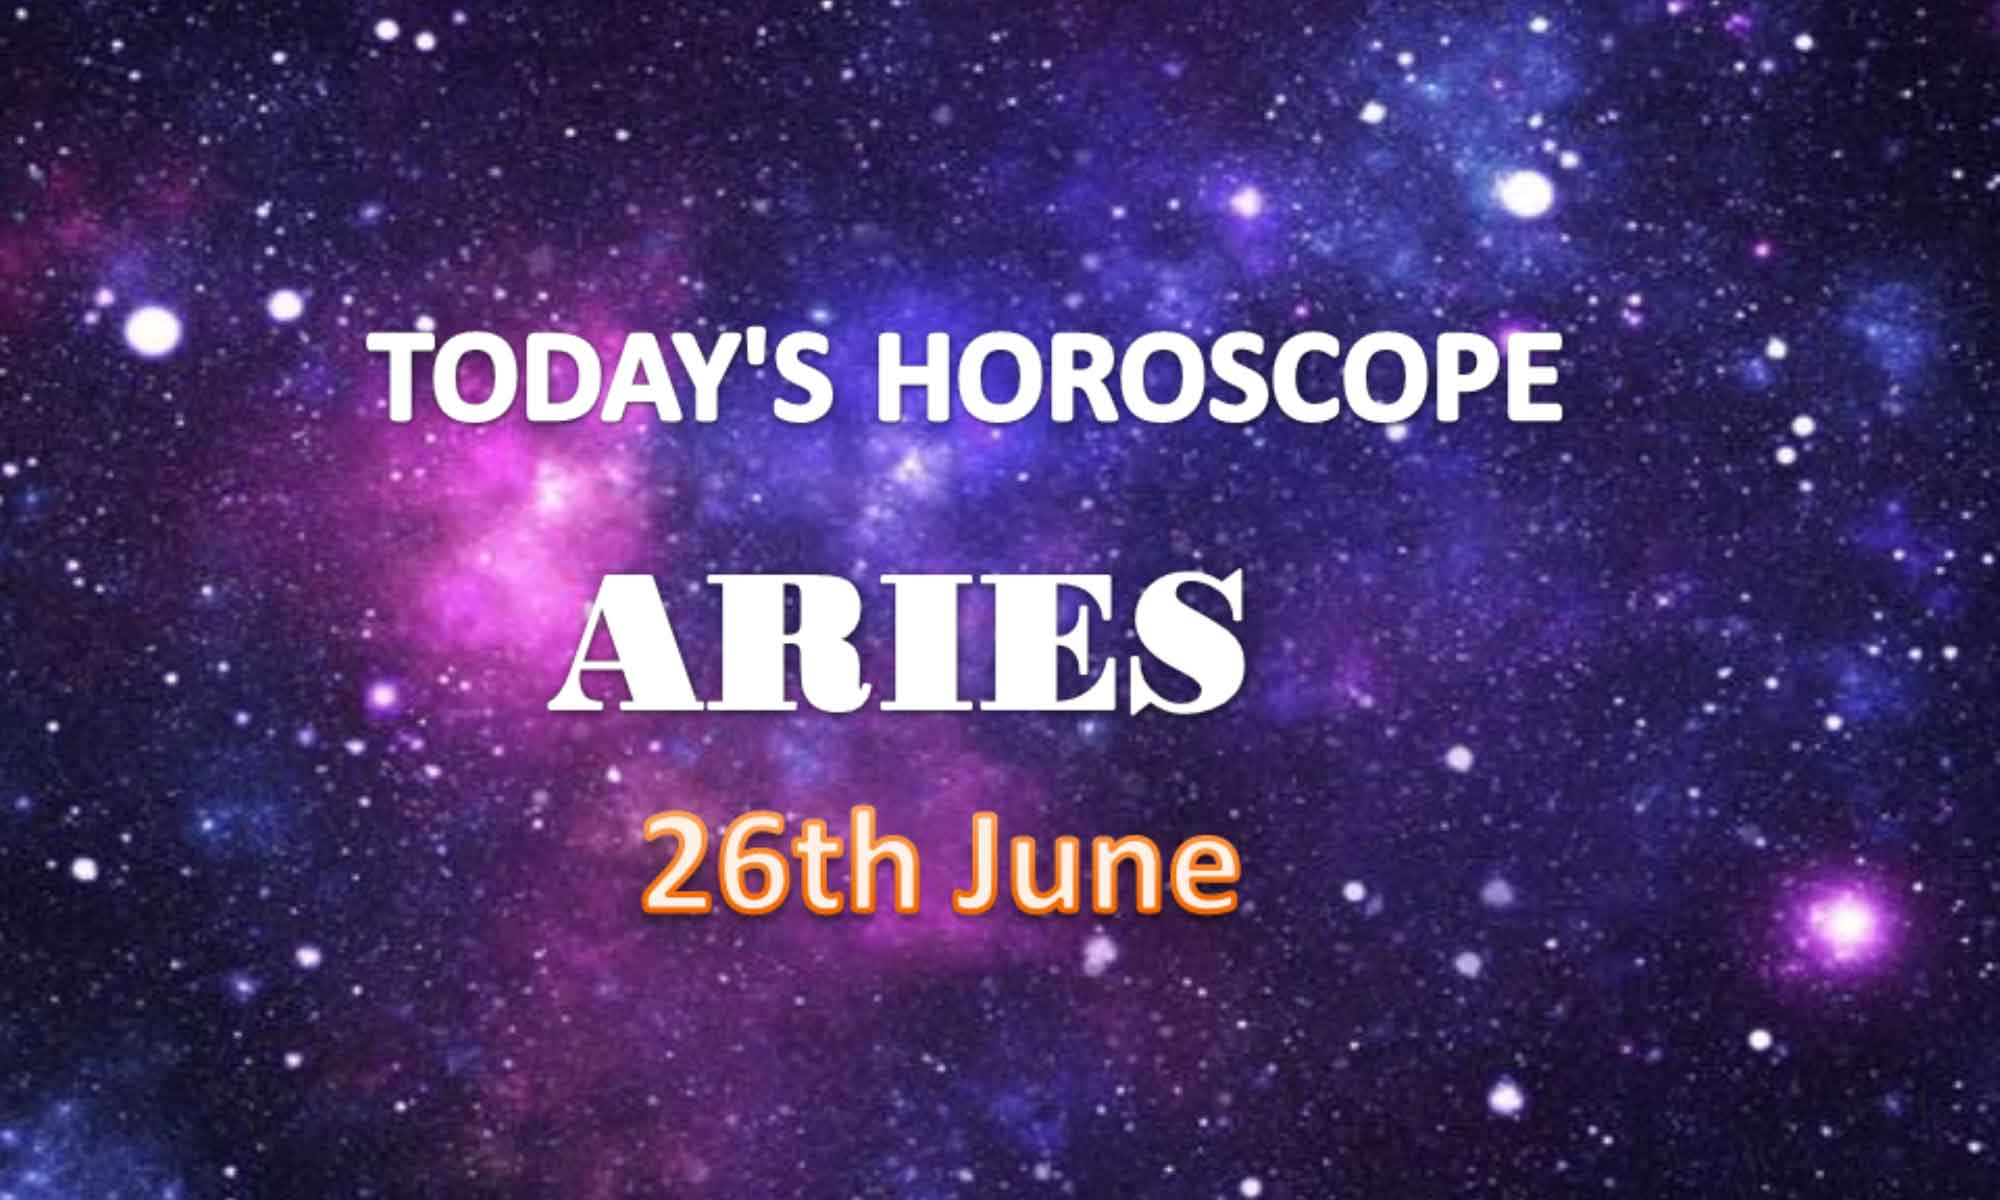 aries daily horoscope for today saturday june 26th 2021